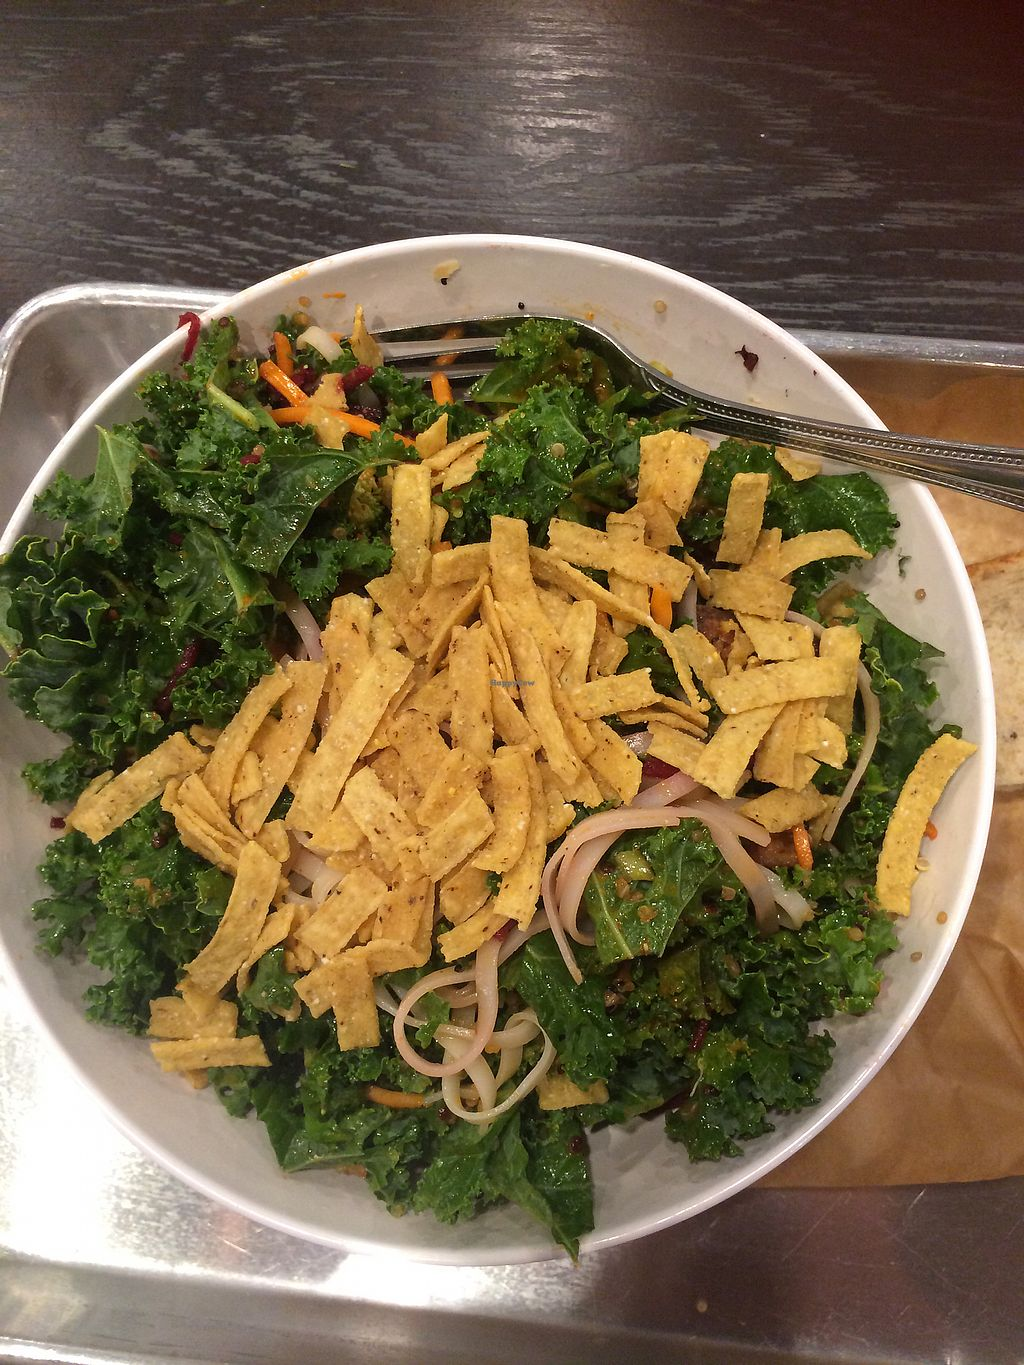 """Photo of CoreLife Eatery  by <a href=""""/members/profile/fruitiJulie"""">fruitiJulie</a> <br/>Grain bowl with rice noodles <br/> November 10, 2017  - <a href='/contact/abuse/image/92653/323772'>Report</a>"""